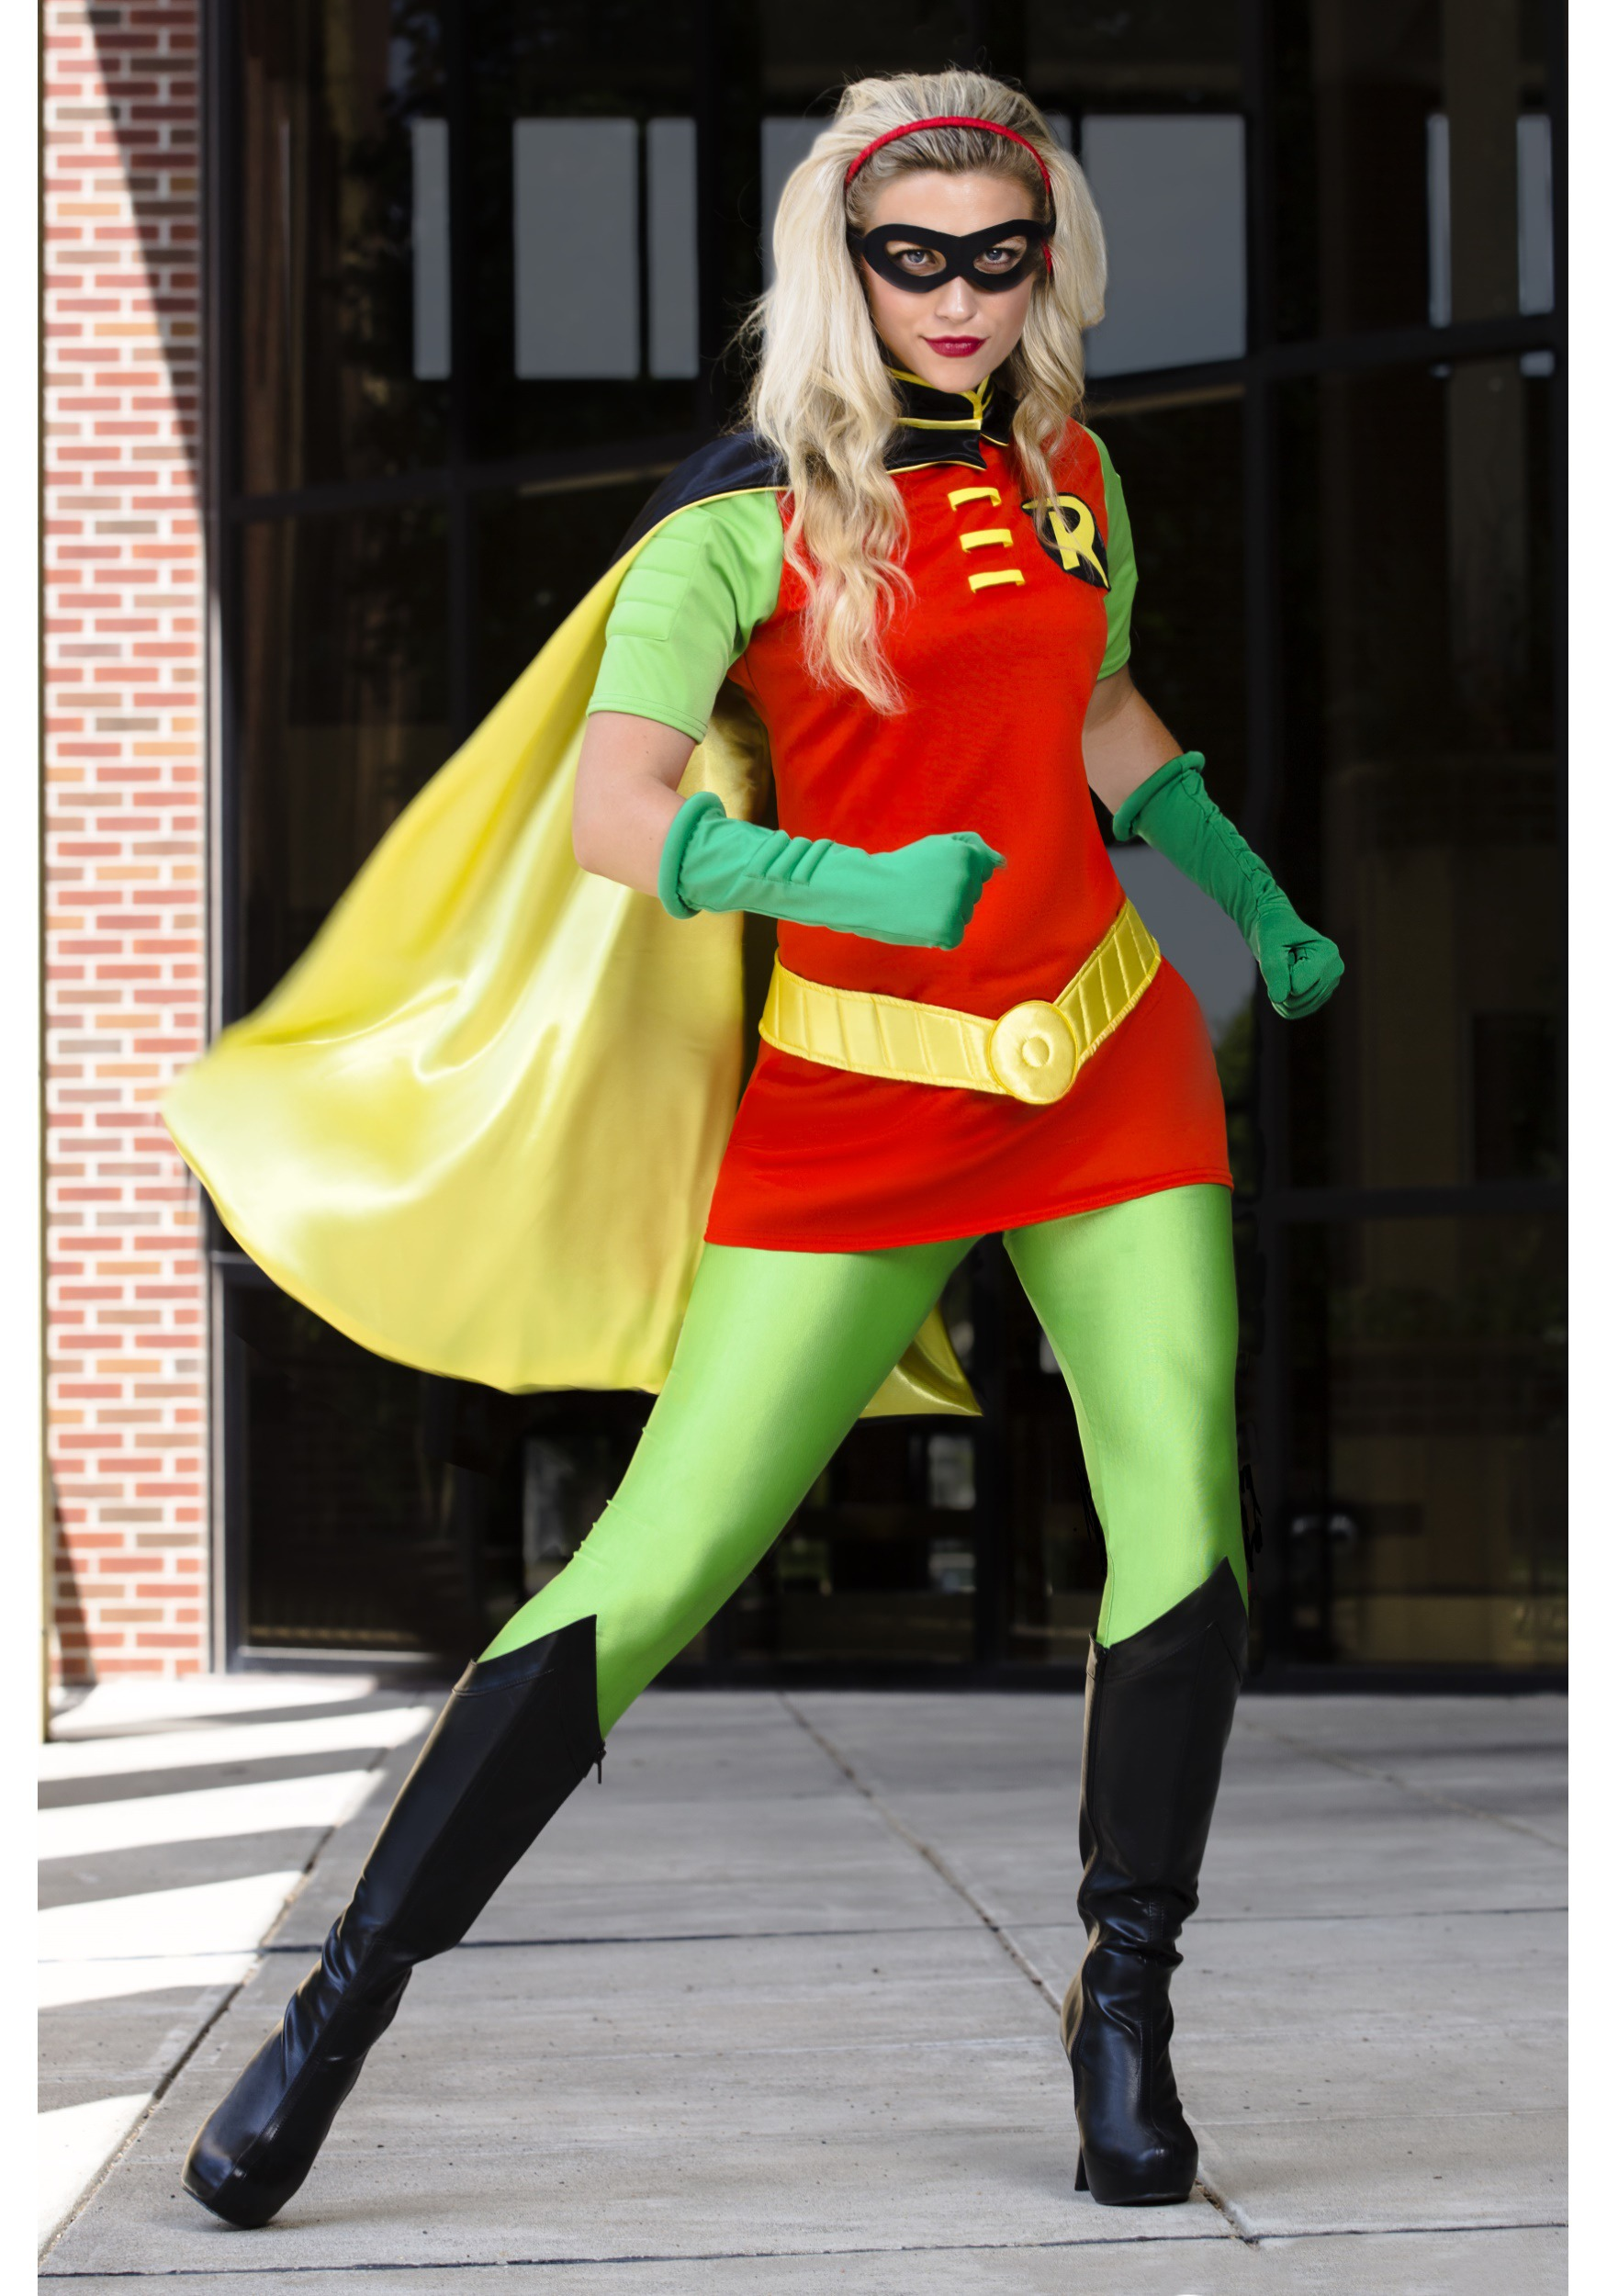 ad558b257 Superhero Costumes for Women - Female Superhero Costumes